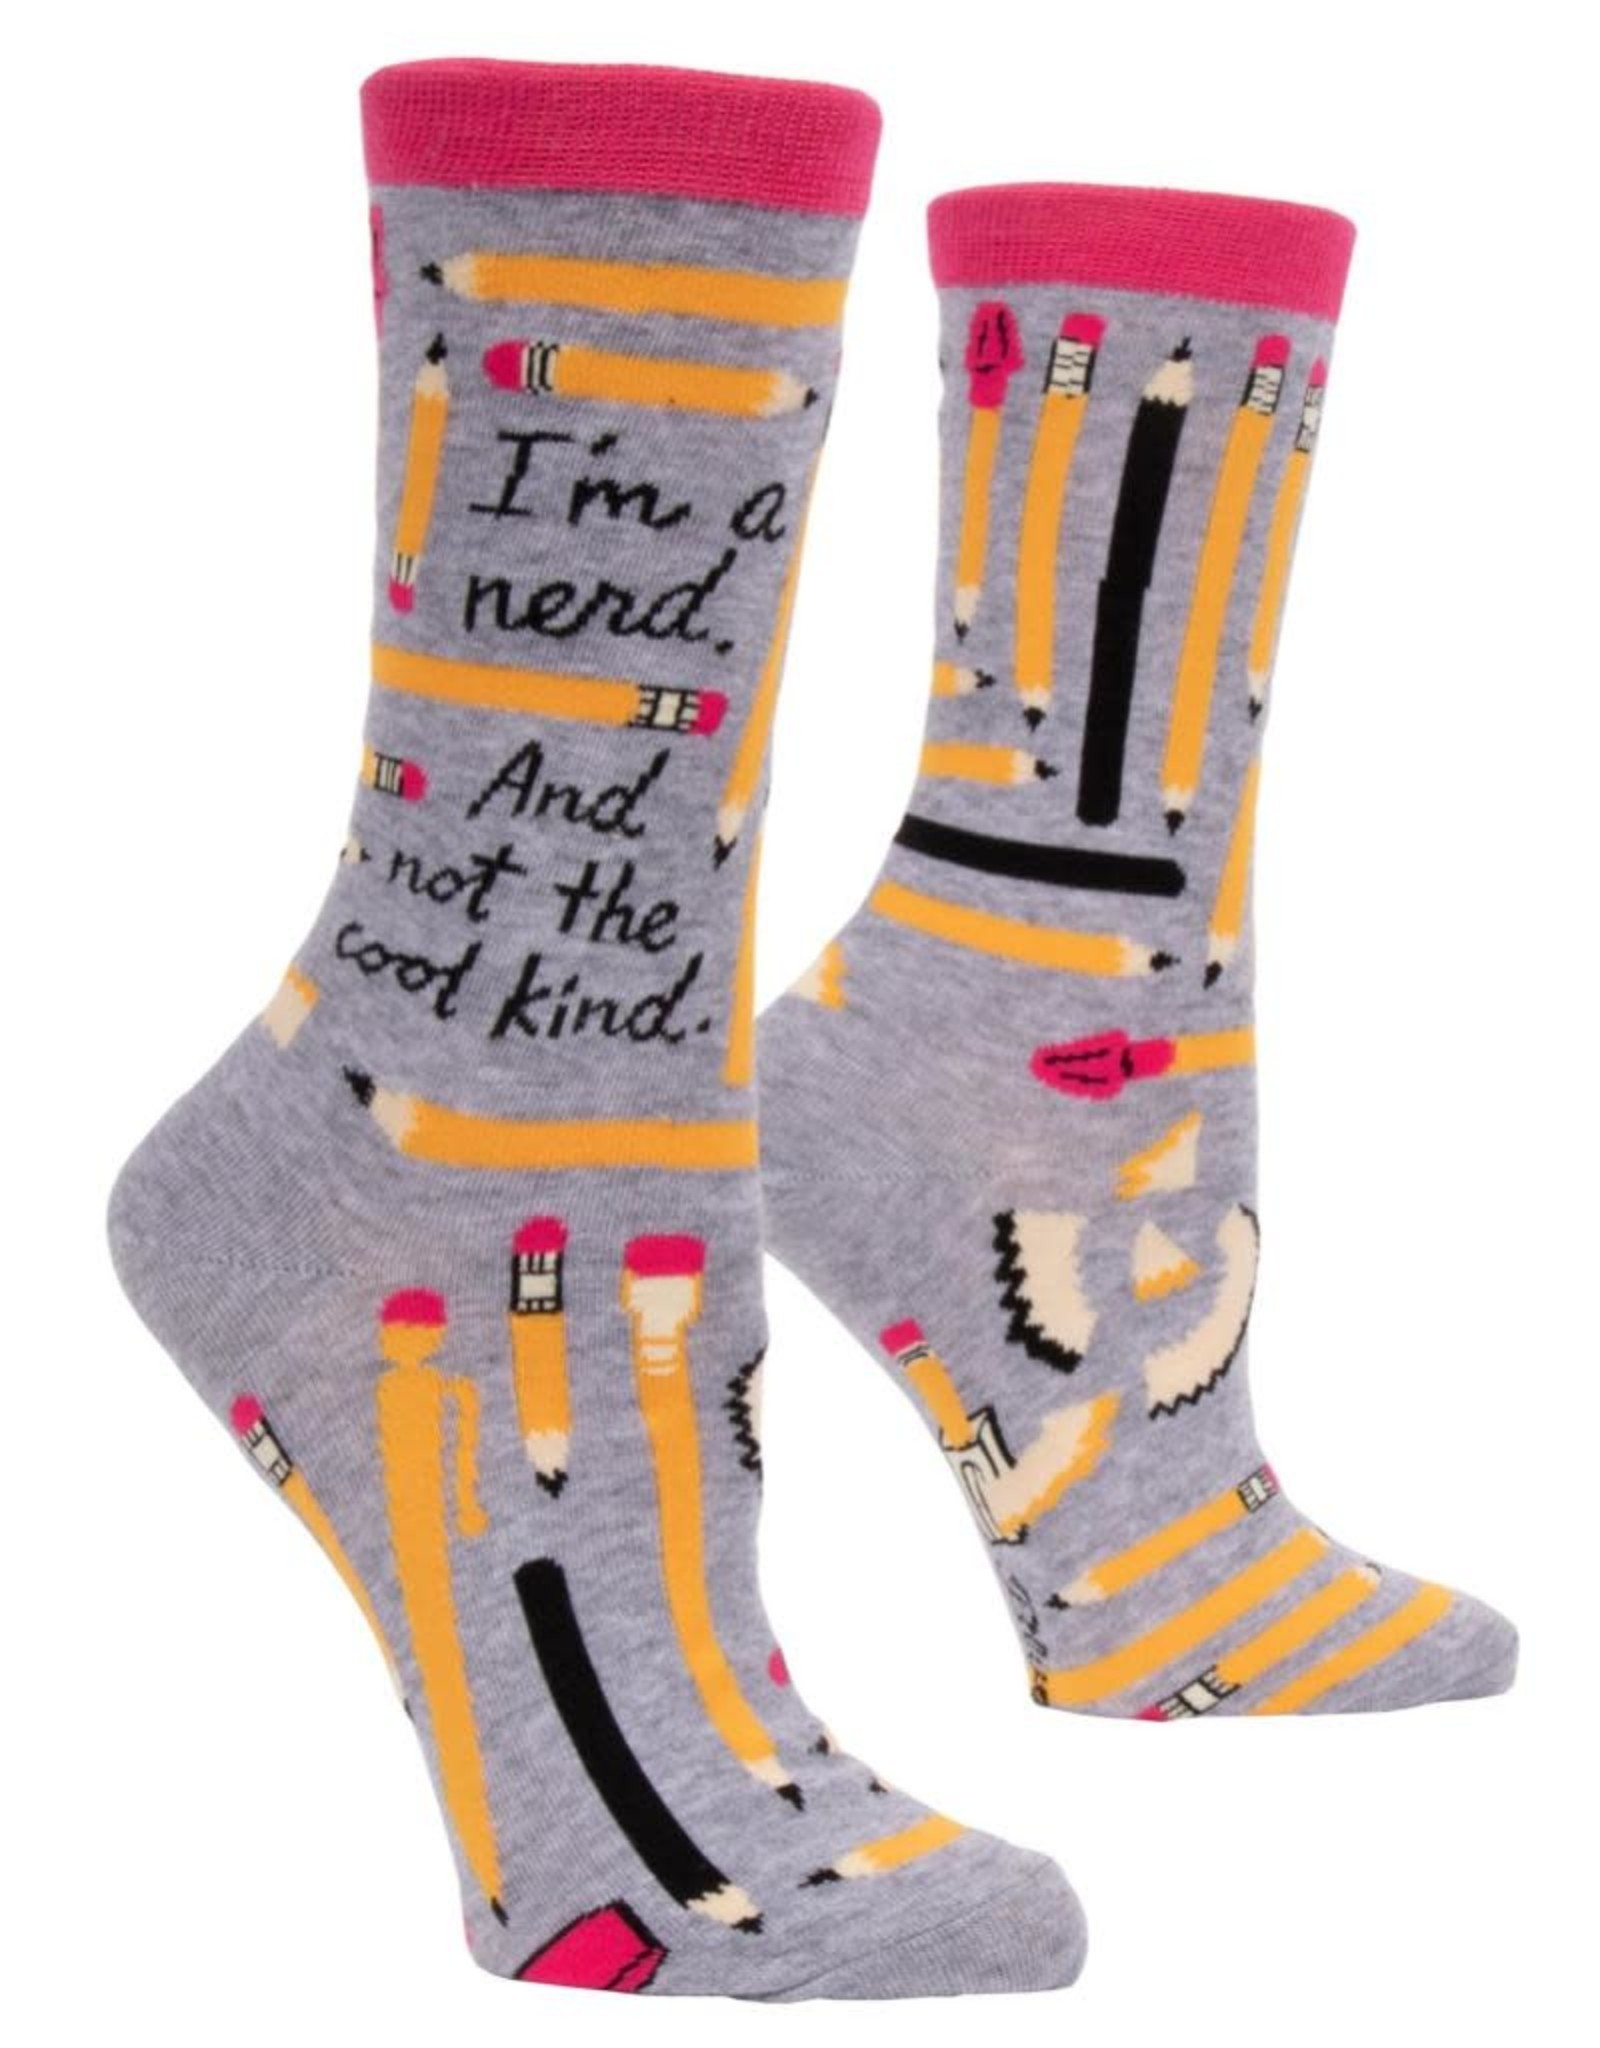 Blue Q I'm A Nerd and Not the Cool Kind Women's Crew Socks